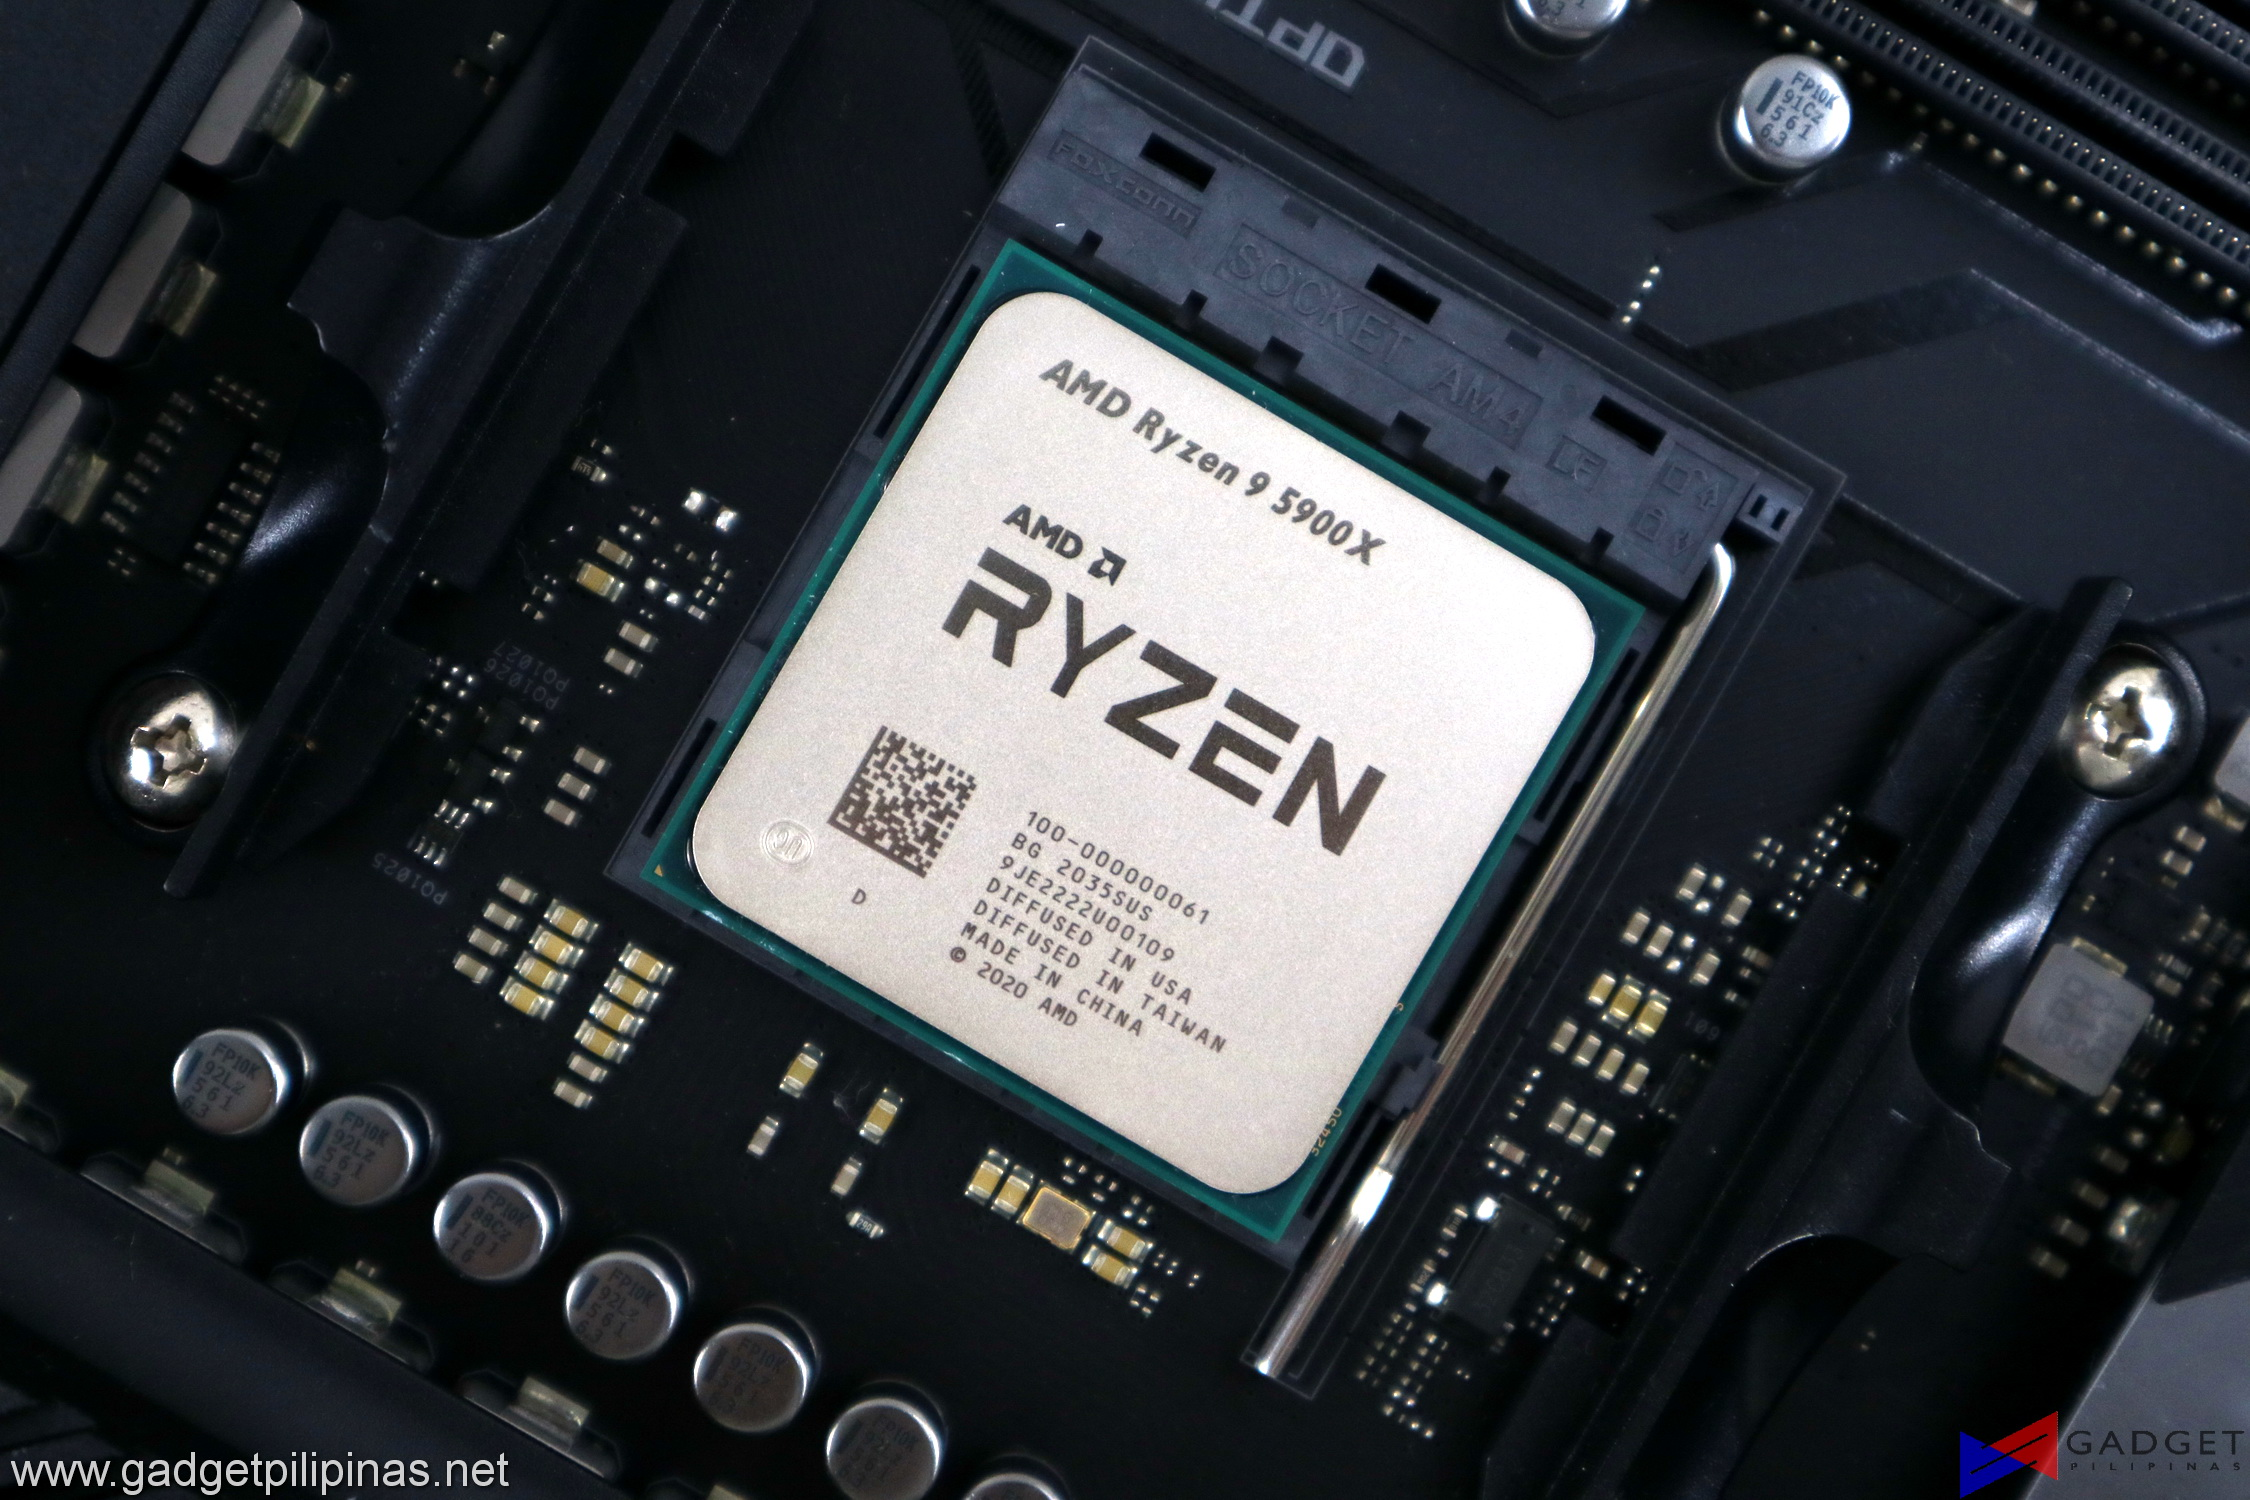 AMD Ryzen 9 5900X Review -5900X PH Price Review